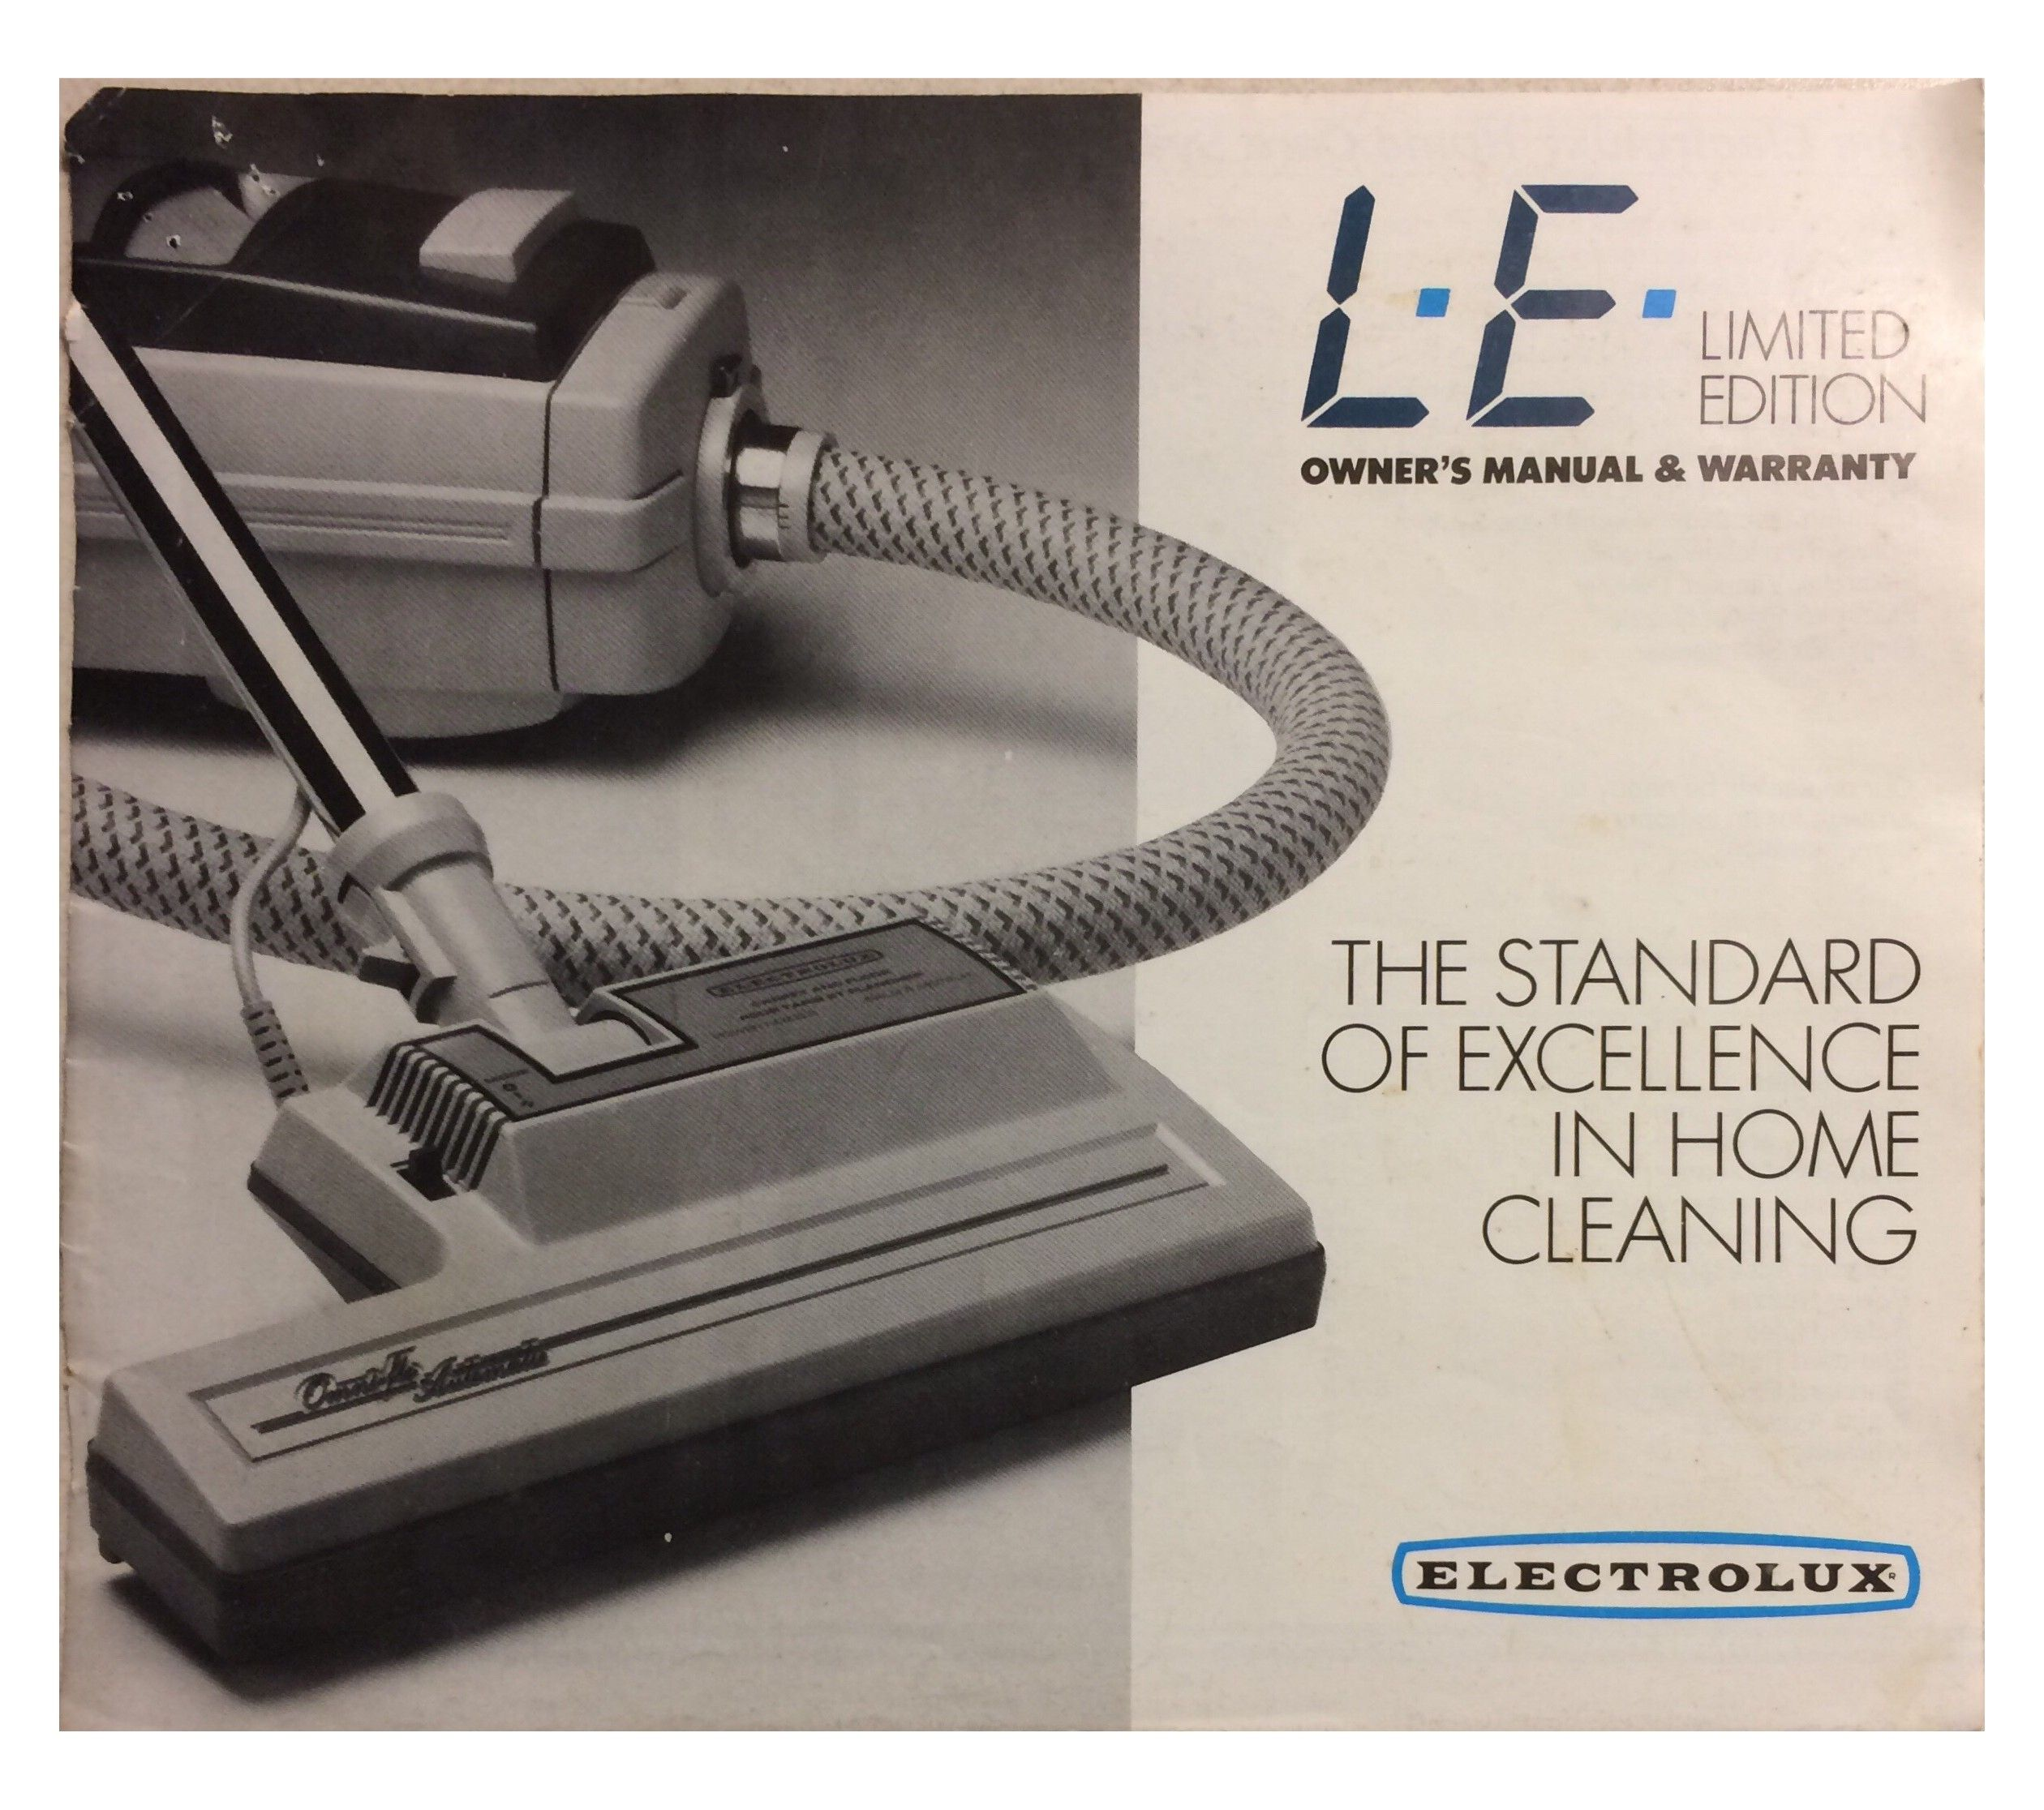 le electrolux limited edition vacuum cleaner manual pg 1 [ 2520 x 2232 Pixel ]